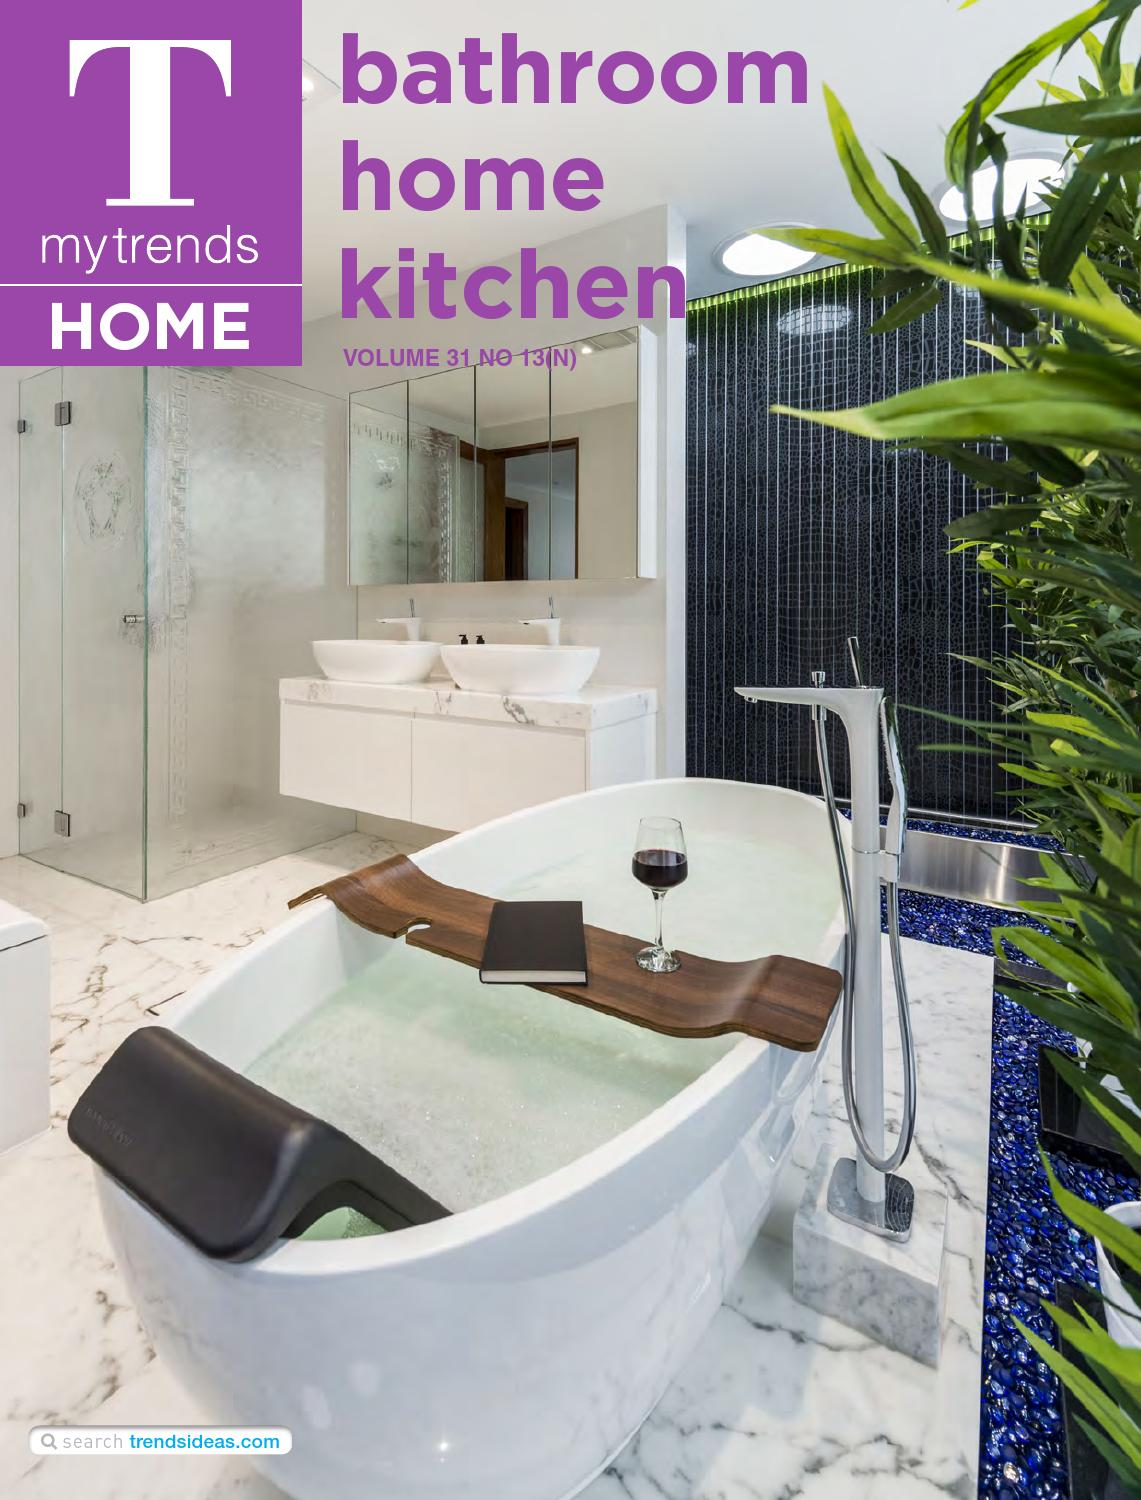 myTrends Home Vol 31-13 New Zealand by trendsideas.com - issuu on hide bar ideas, hide jewelry ideas, hide tv ideas,